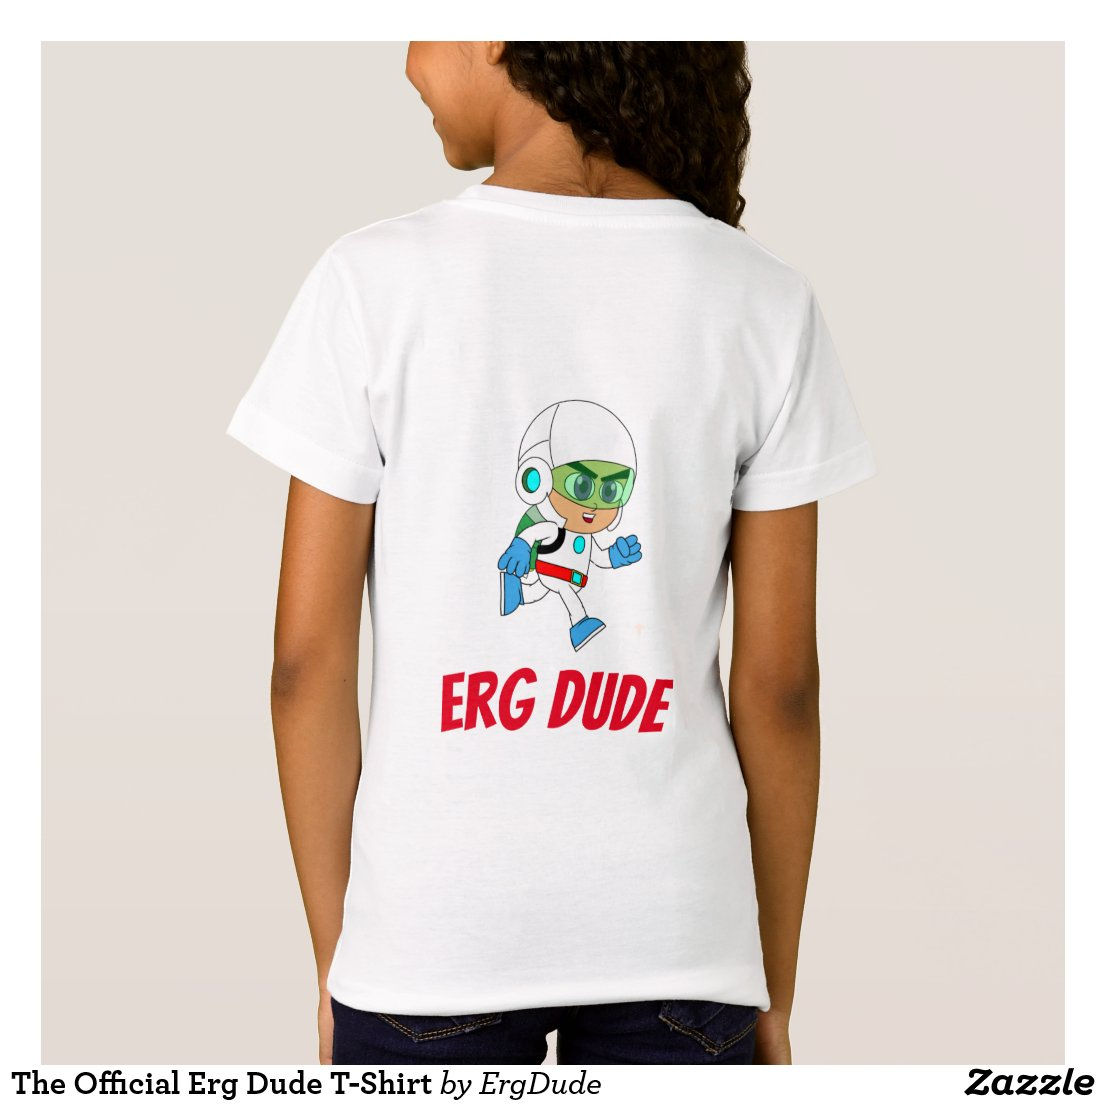 The Official Erg Dude T-Shirt